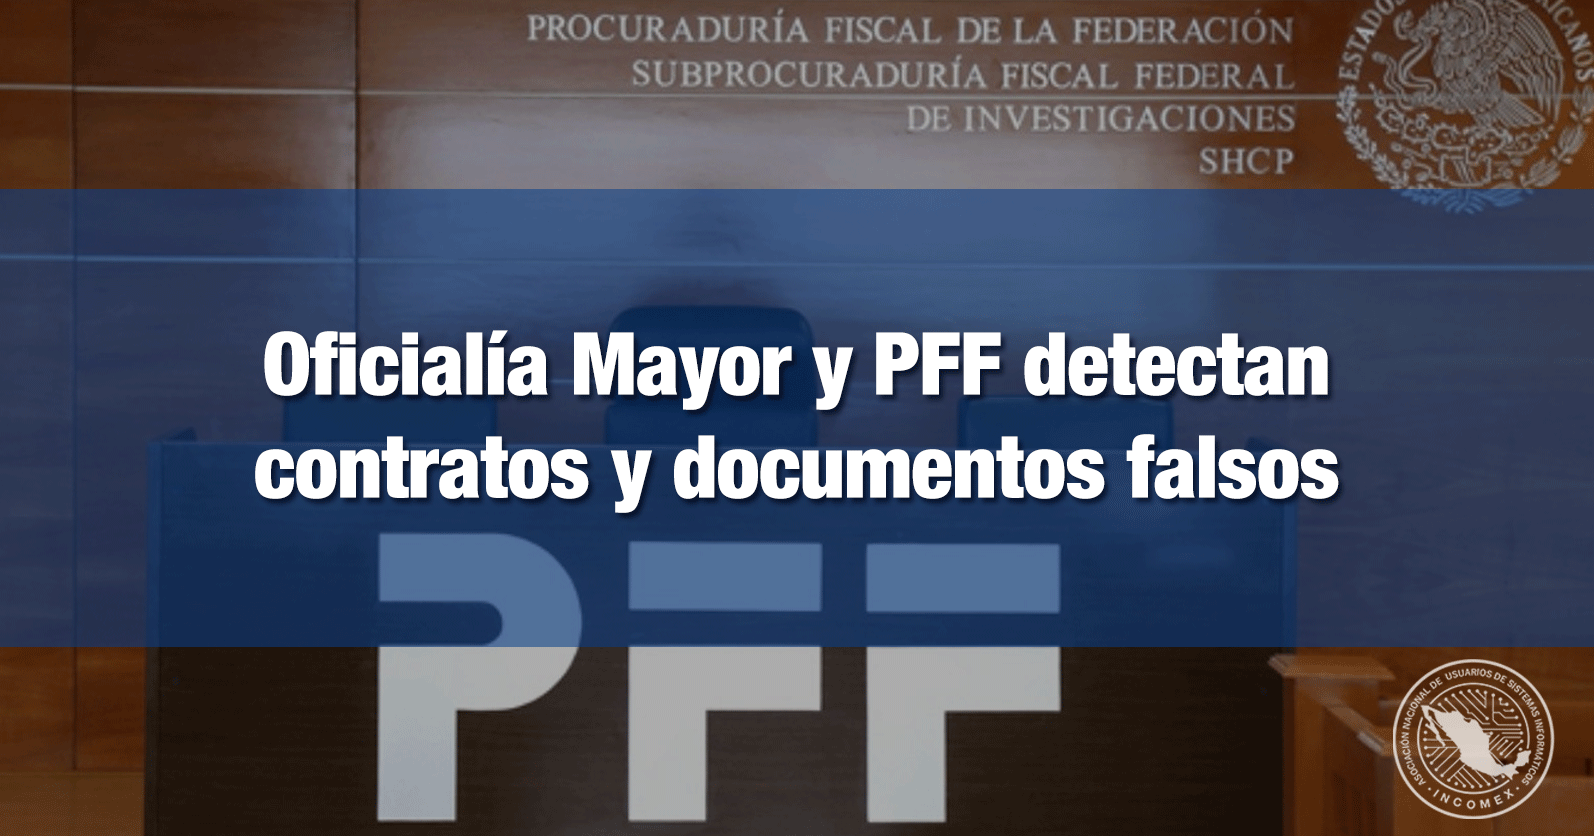 Oficialía Mayor y PFF detectan contratos y documentos falsos